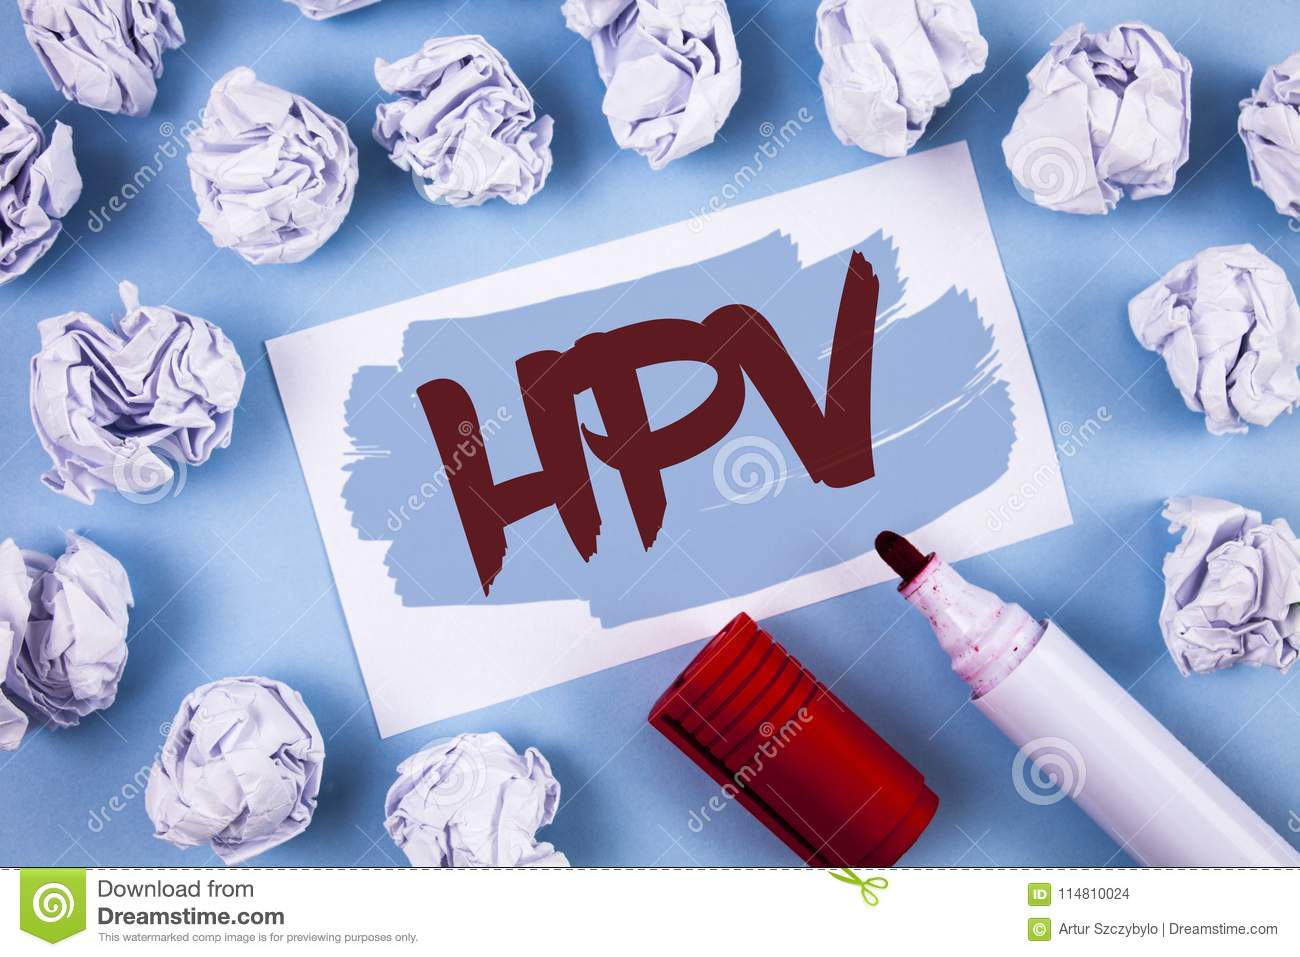 papillomavirus infection sexually transmitted)